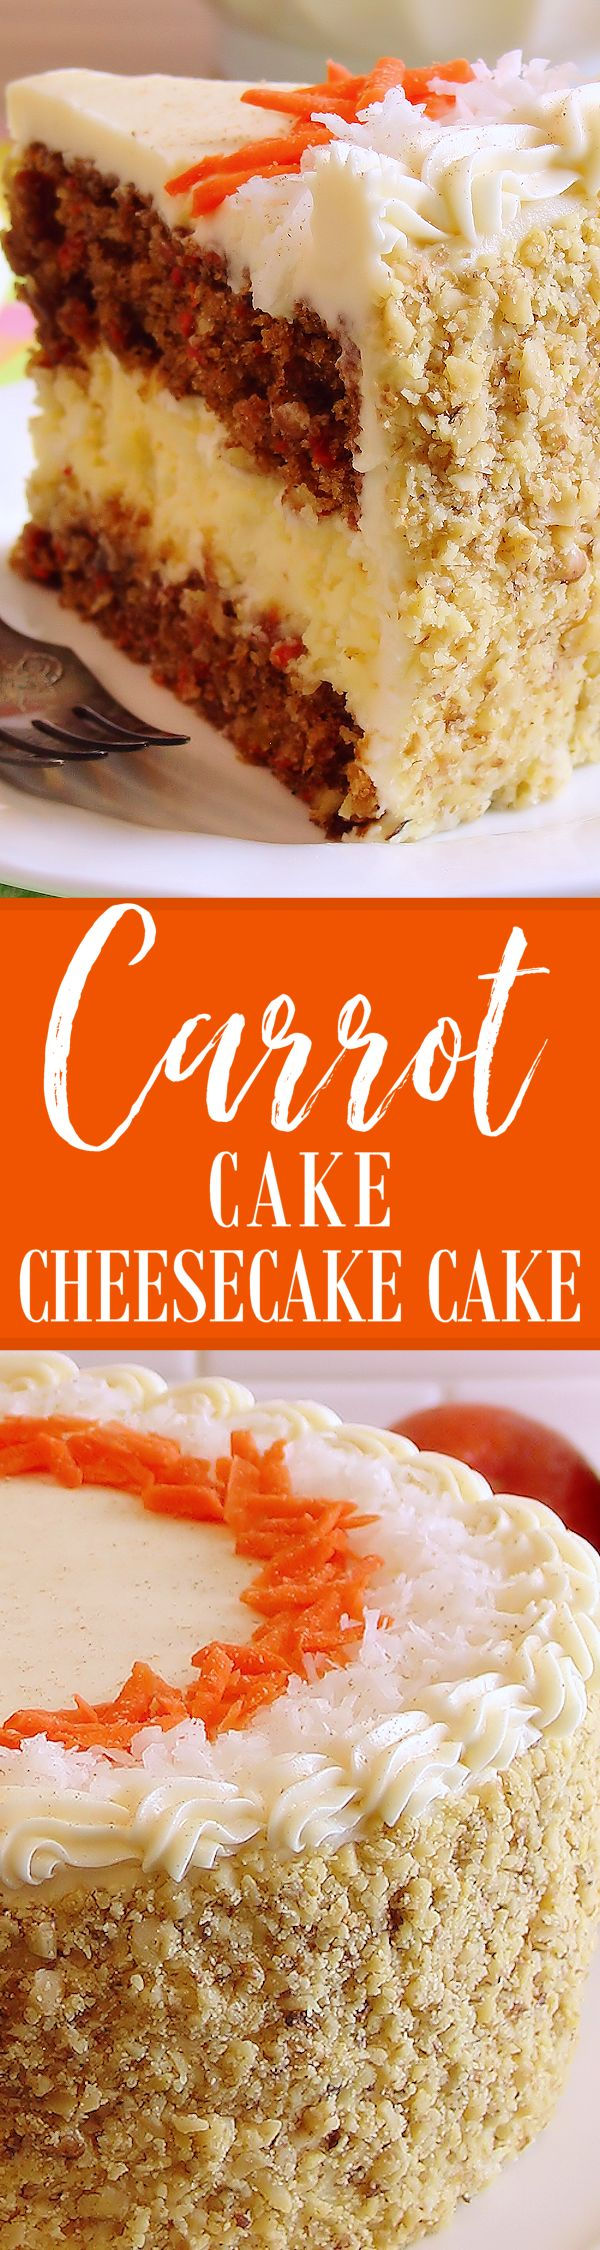 Carrot Cake Cheesecake Cake Bakery-Style ~ Perfectly moist and flavorful carrot cake layered with the creamiest cheesecake and frosted with Best Ever Cream Cheese Buttercream. Perfect for Easter! Recipe is complete with step-by-step photos and instructions. Everyone will LOVE this fabulous cake!